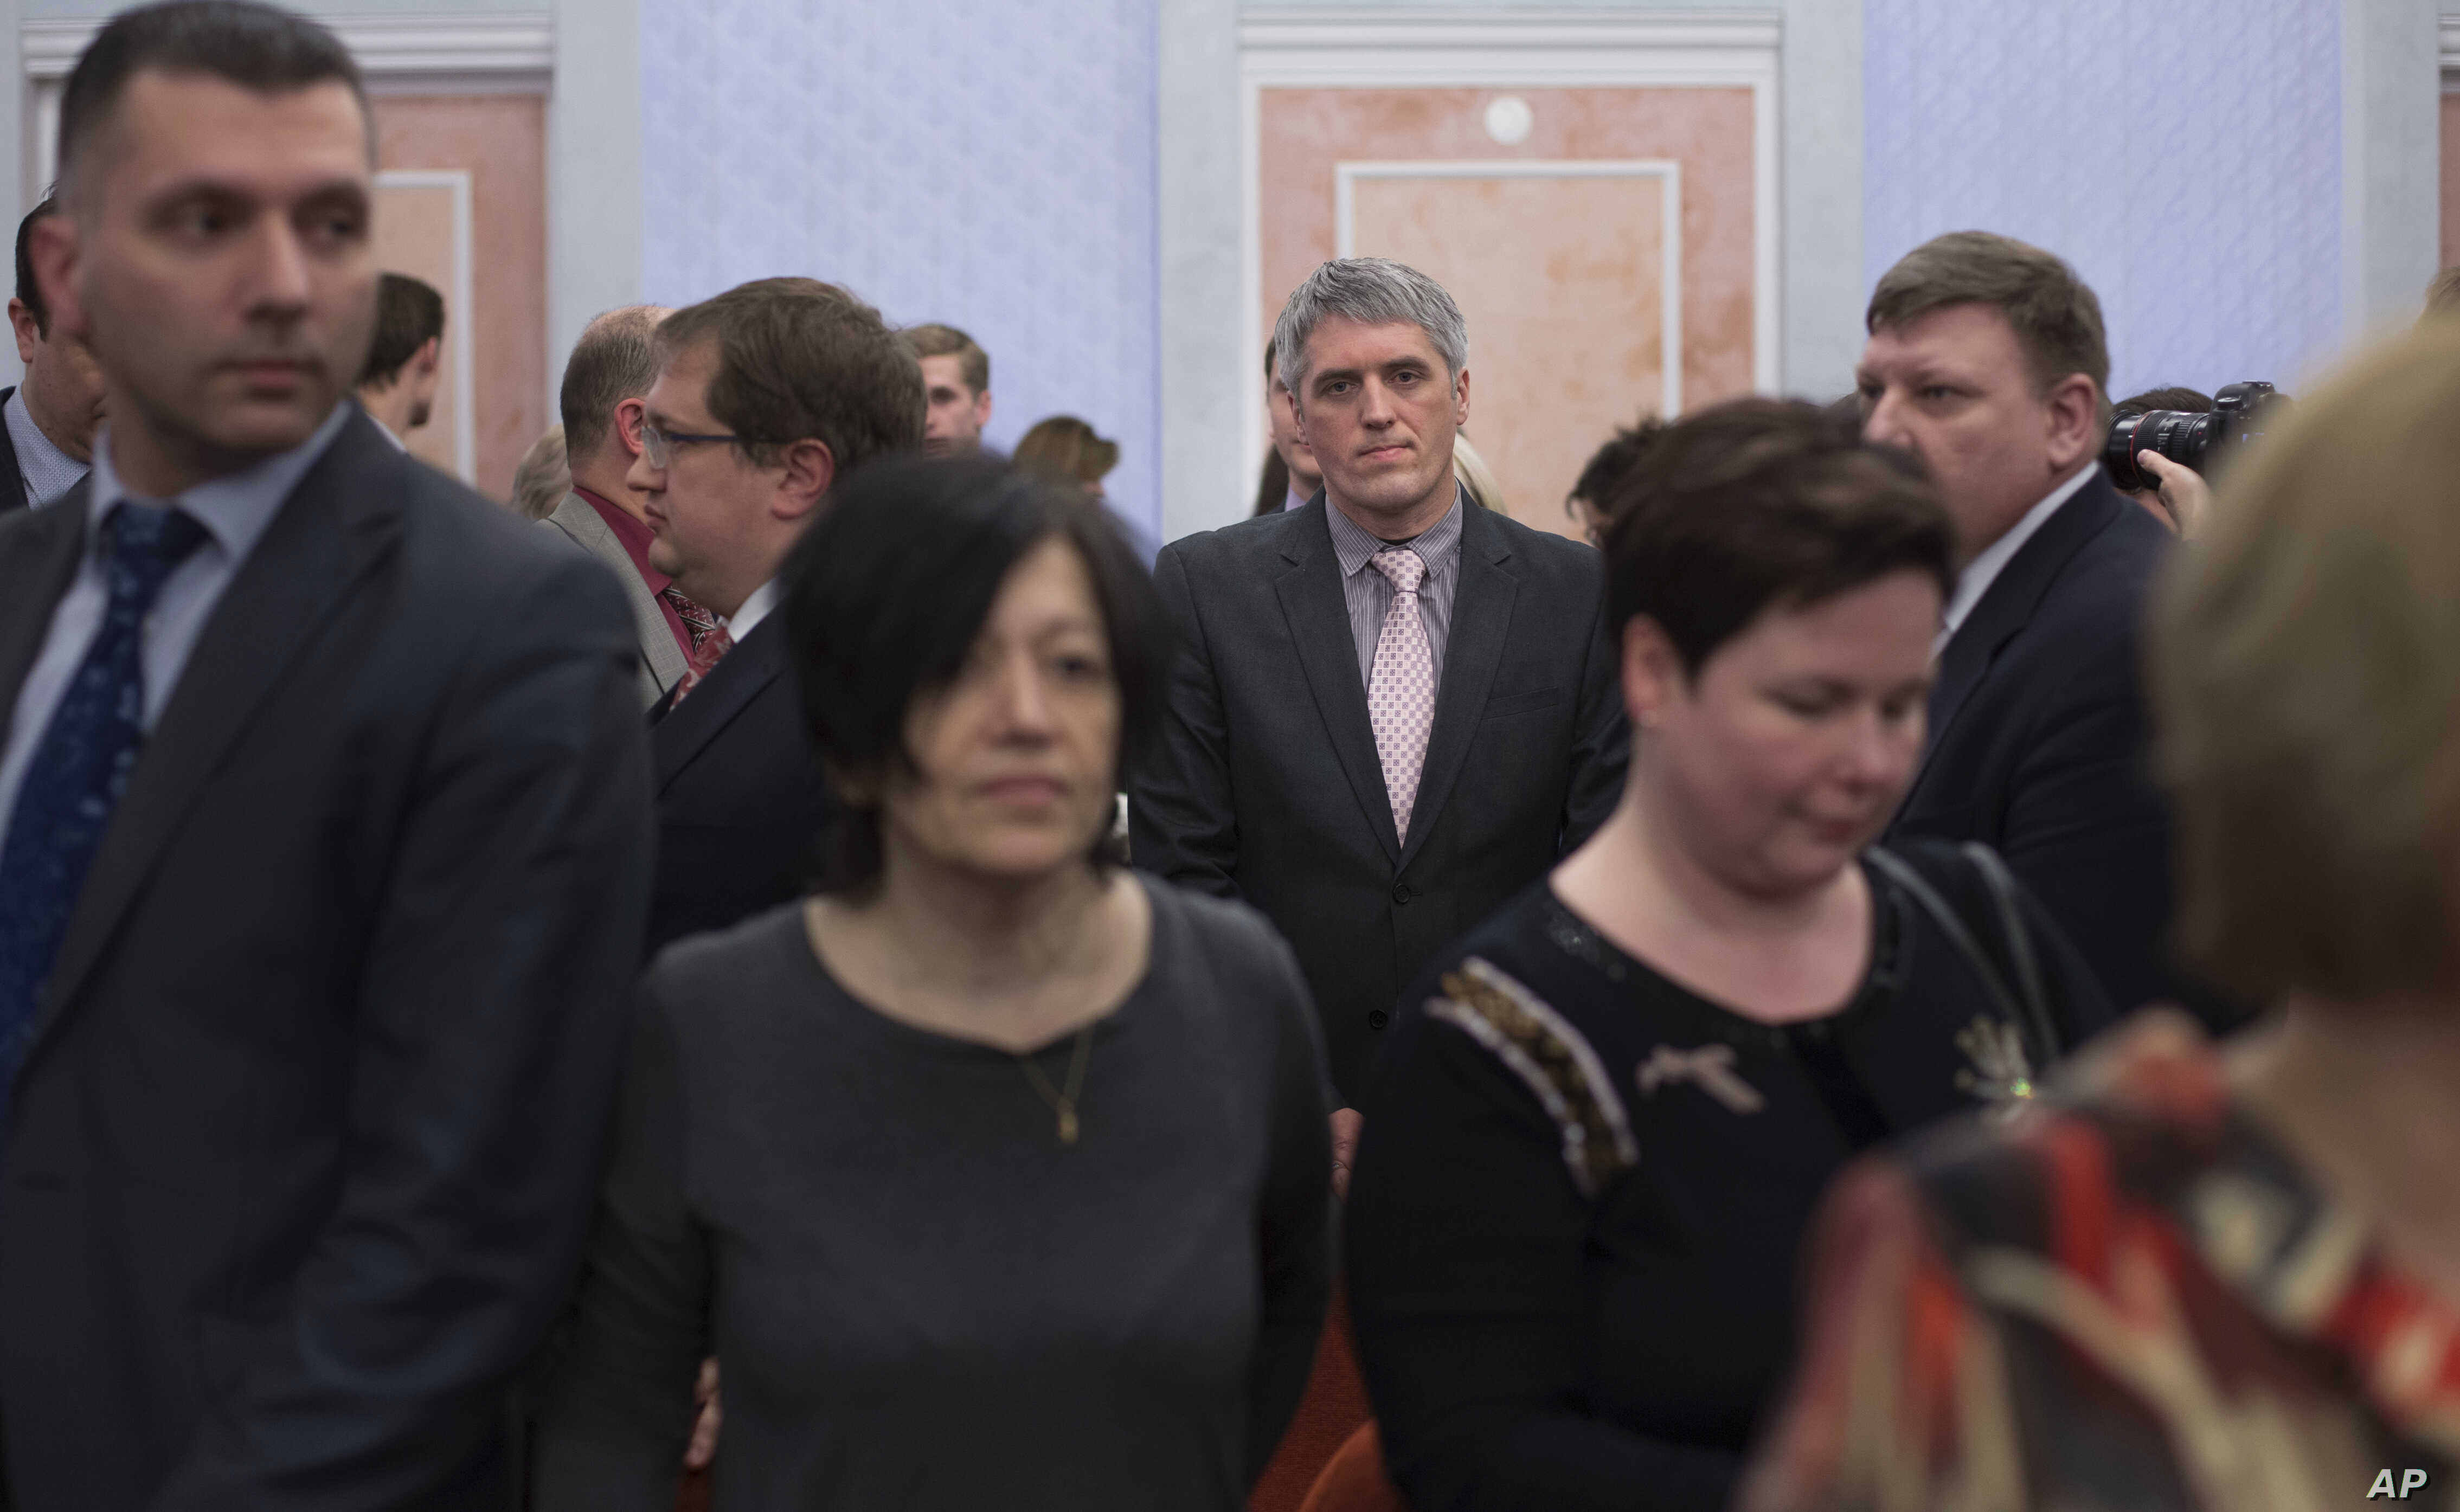 Members of Jehovah's Witnesses react in a court room after a judge's decision in Moscow, April 20, 2017. Russia's Supreme Court has banned the Jehovah's Witnesses from operating in the country.